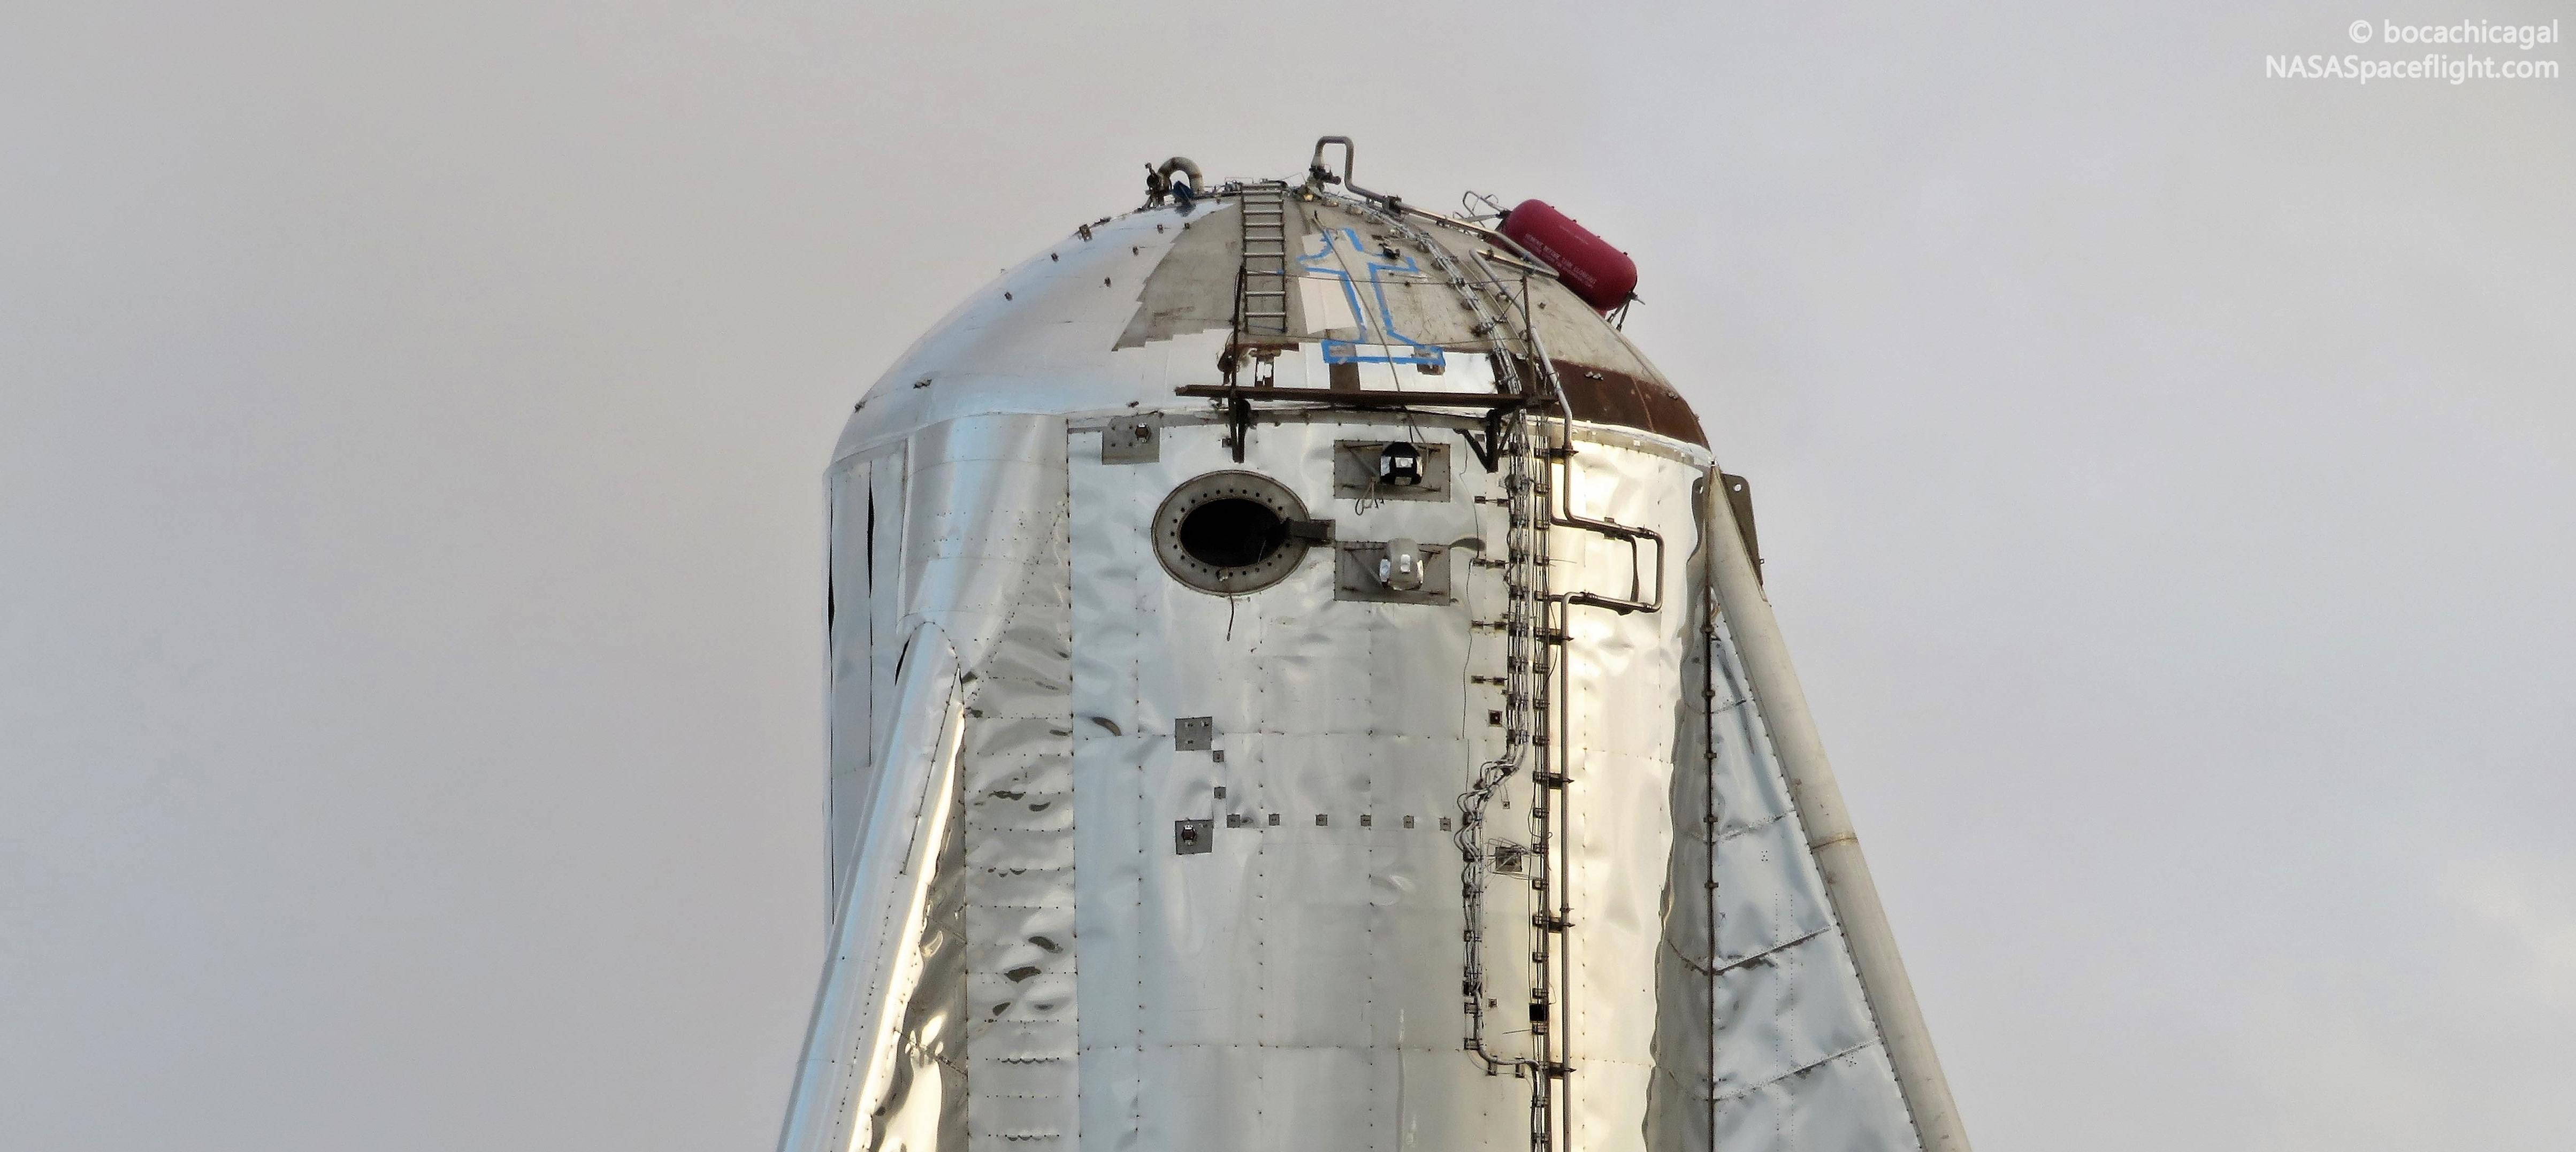 Boca Chica Starhopper ACS install 050719 (NASASpaceflight – bocachicagal) 6 crop